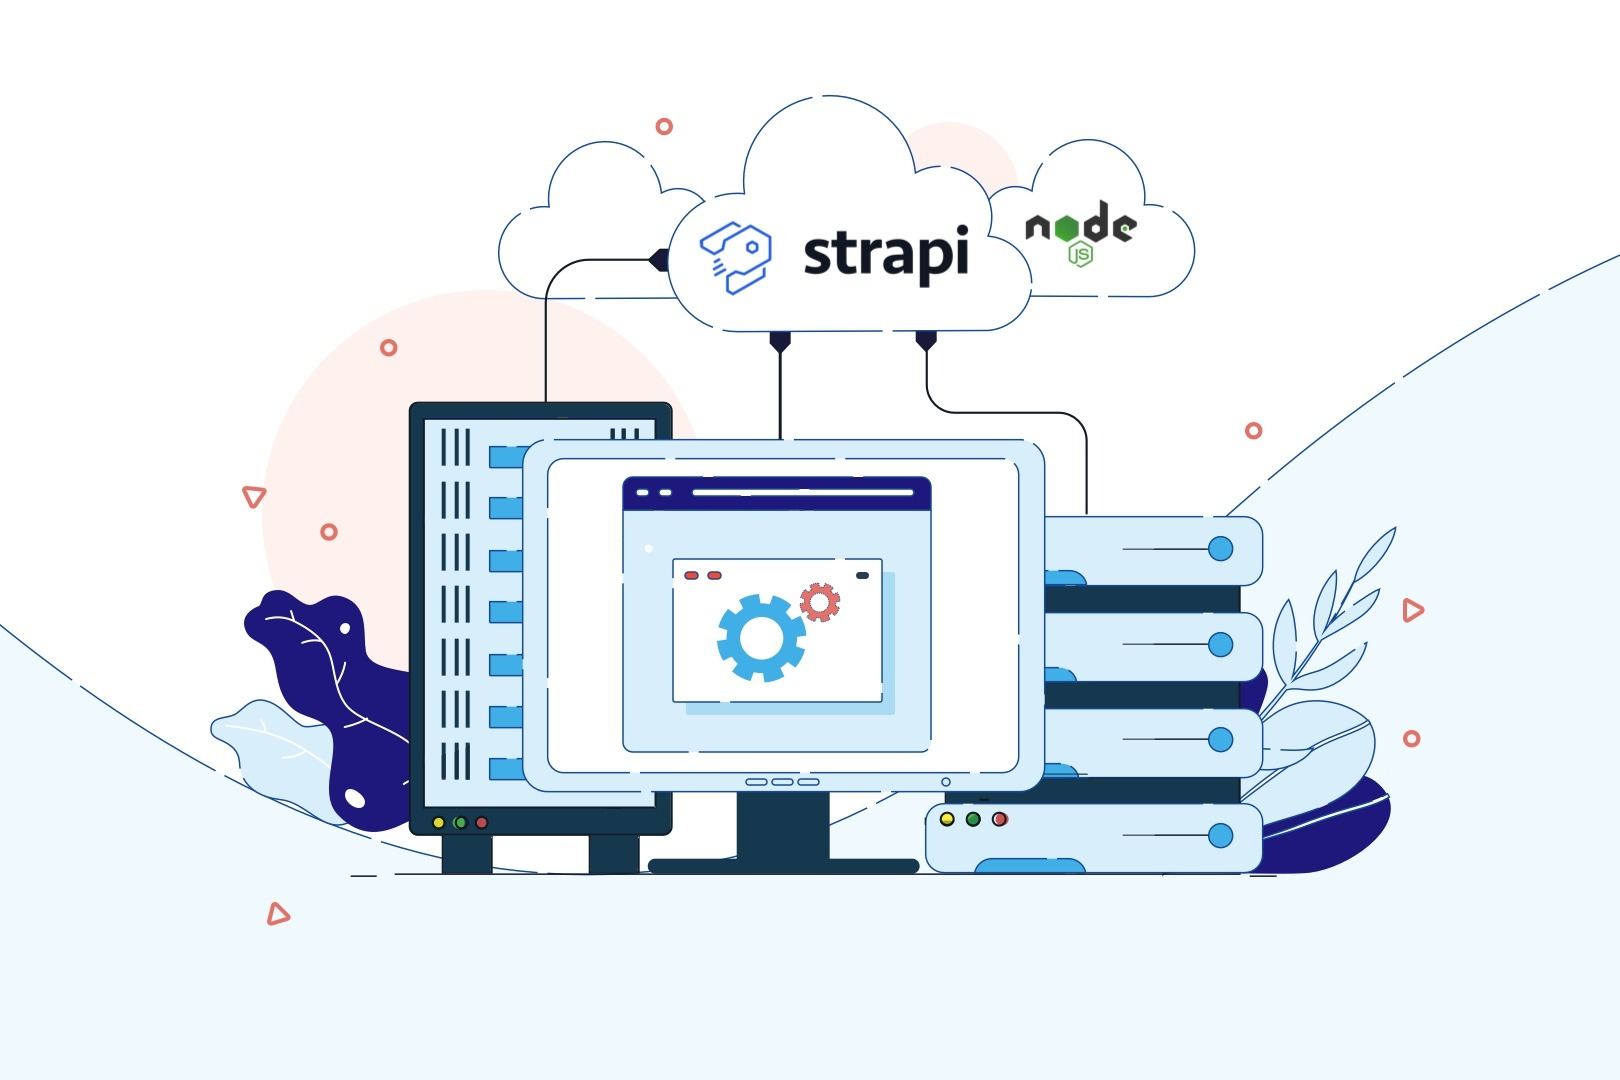 Strapi: Getting started with the Node.js headless CMS